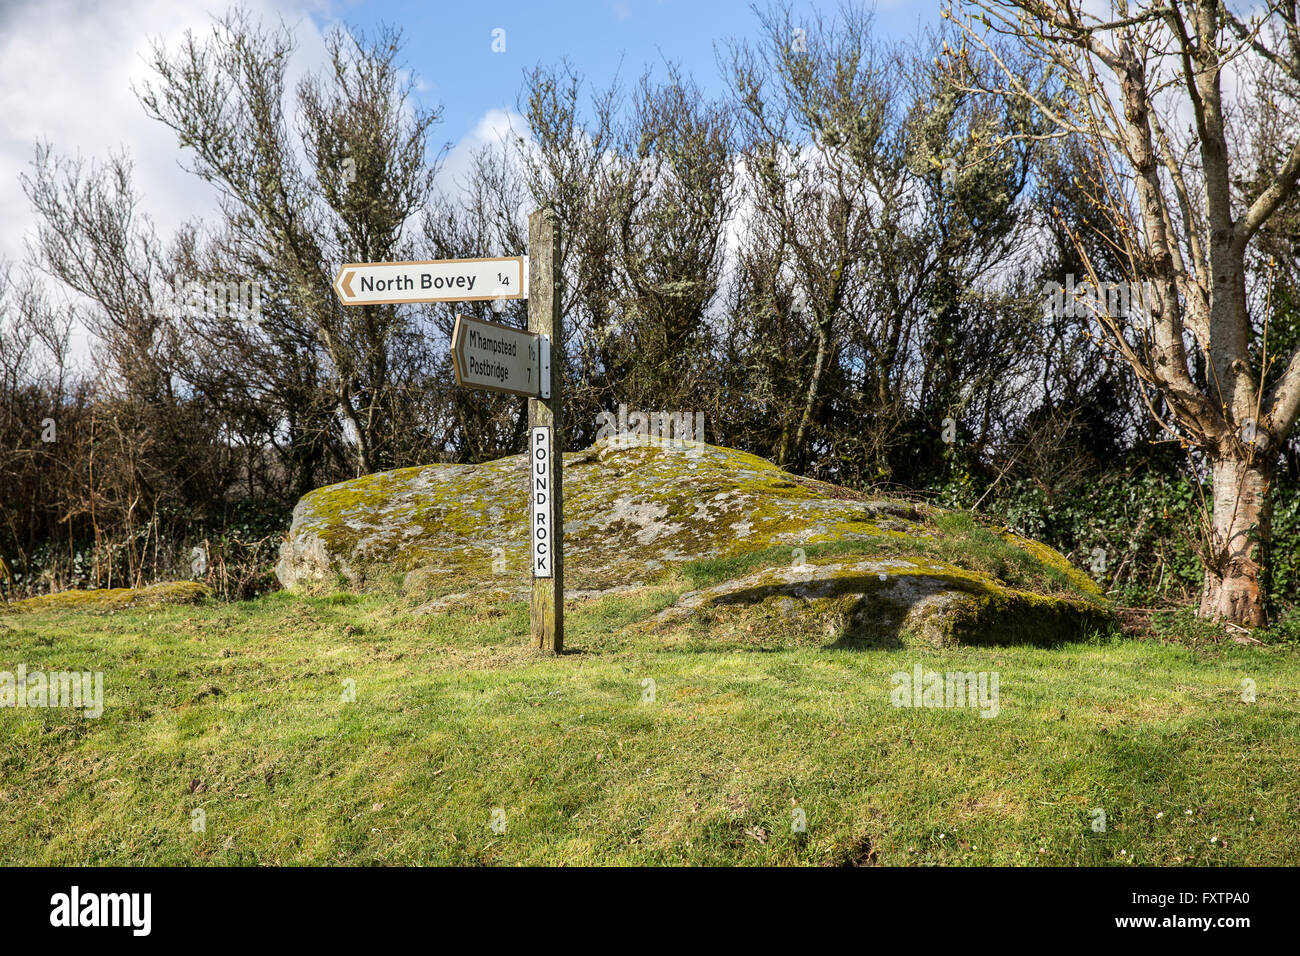 signpost at North Bovey,North Bovey is a village and civil parish situated on the south-eastern side of Dartmoor - Stock Image